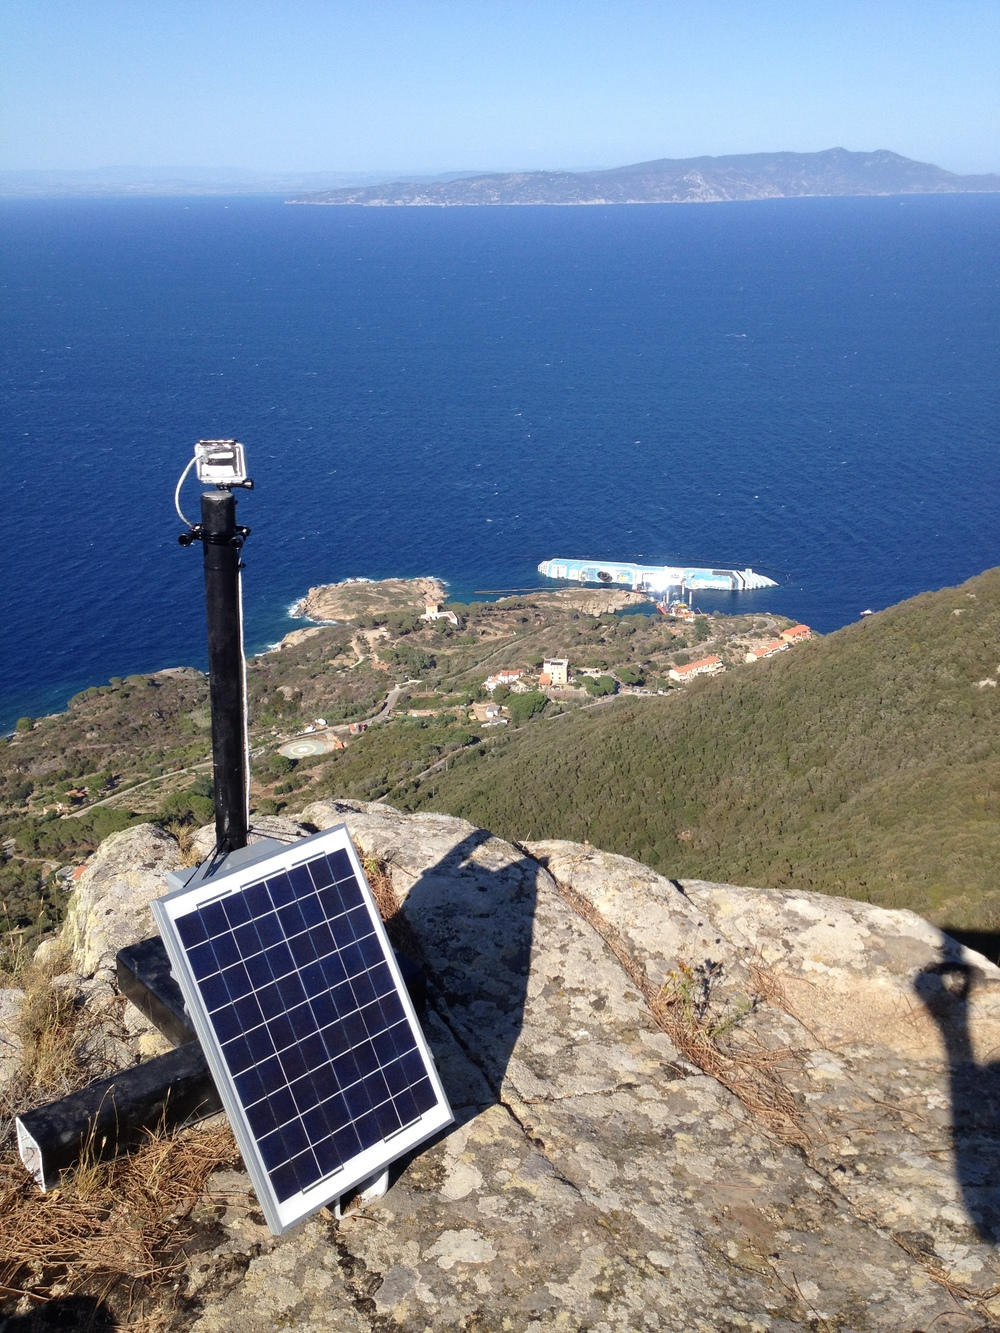 One of my solar powered time lapse rigs in position watching over the wreck of the COSTA CONCORDIA